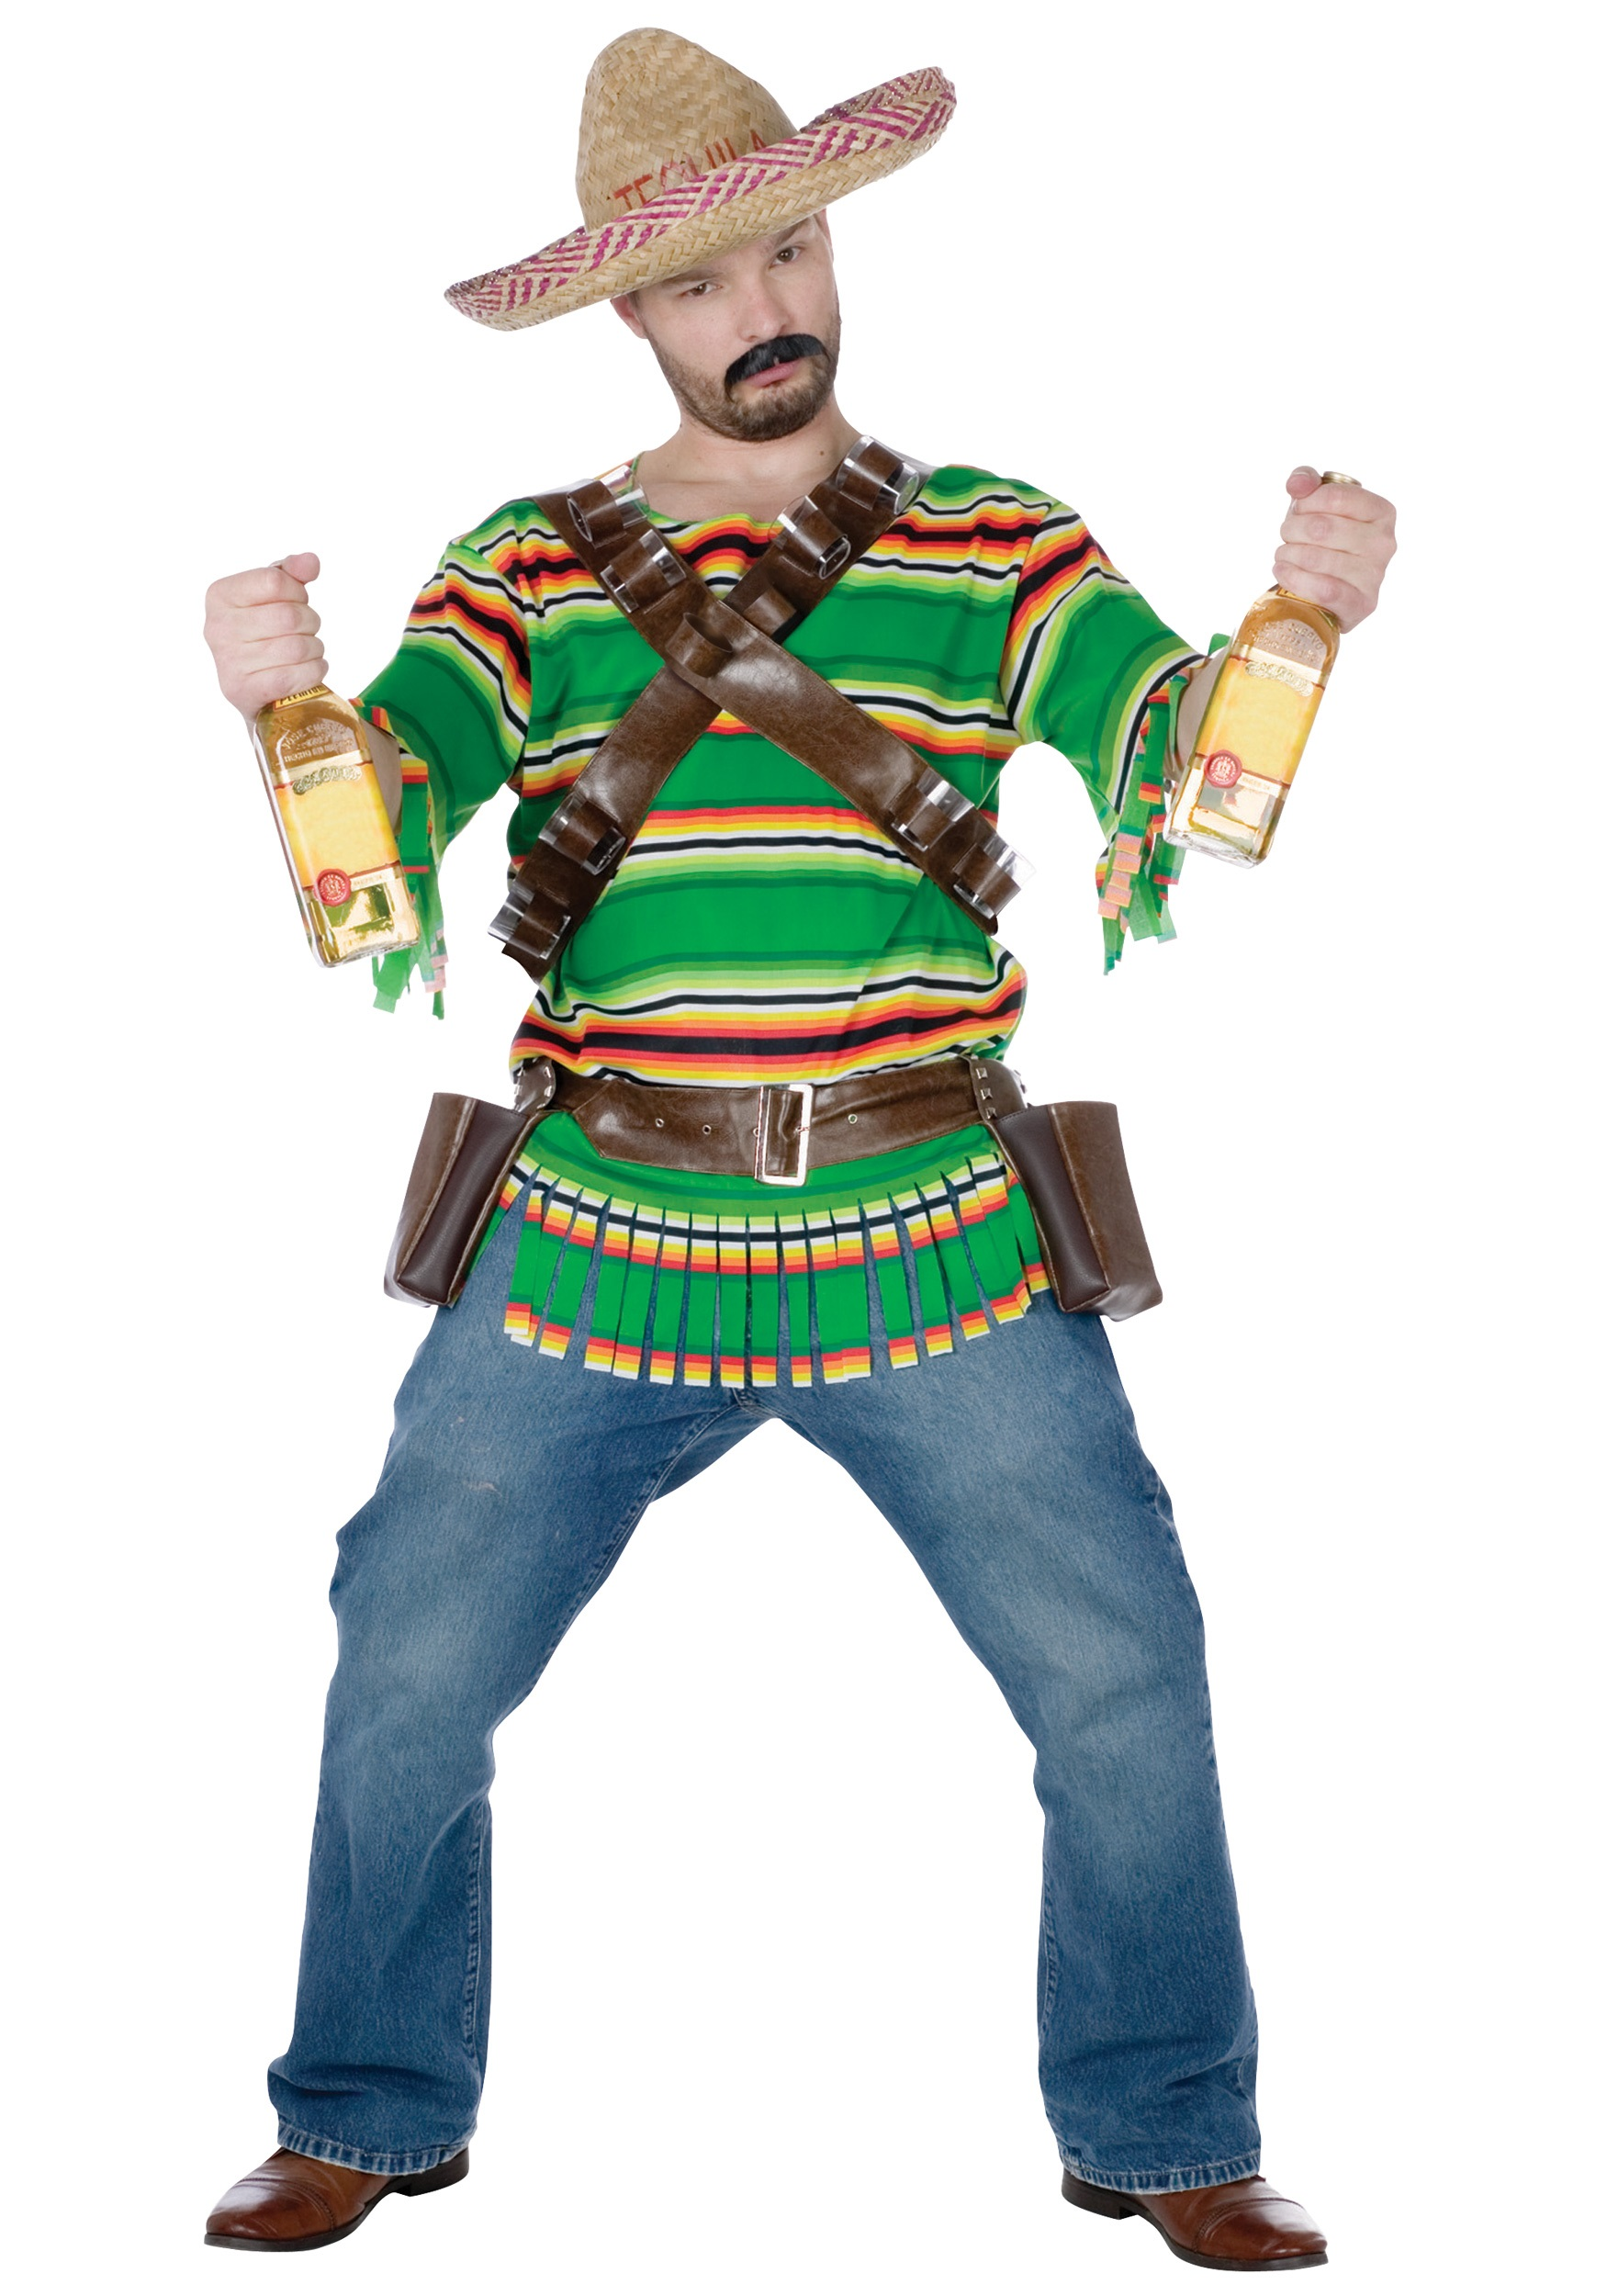 tequila dude costume - Mexican Themed Halloween Costumes